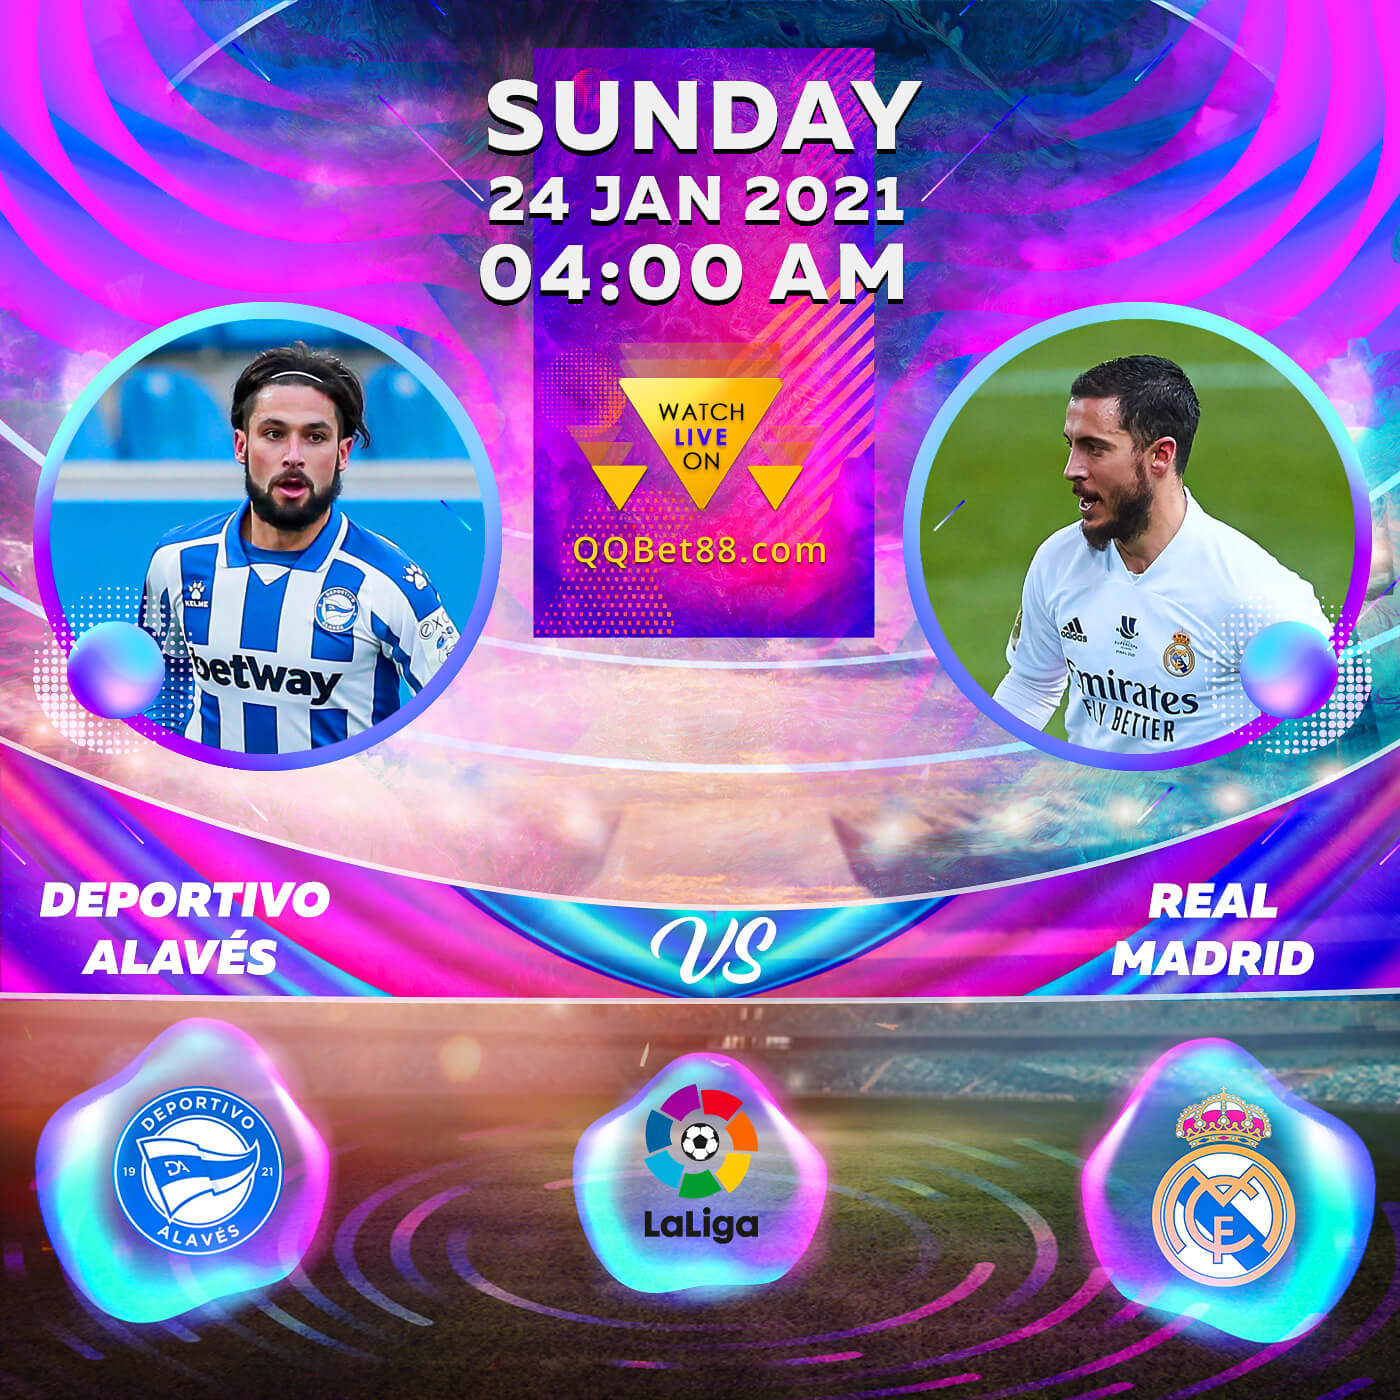 Deportivo Alavés VS Real Madrid